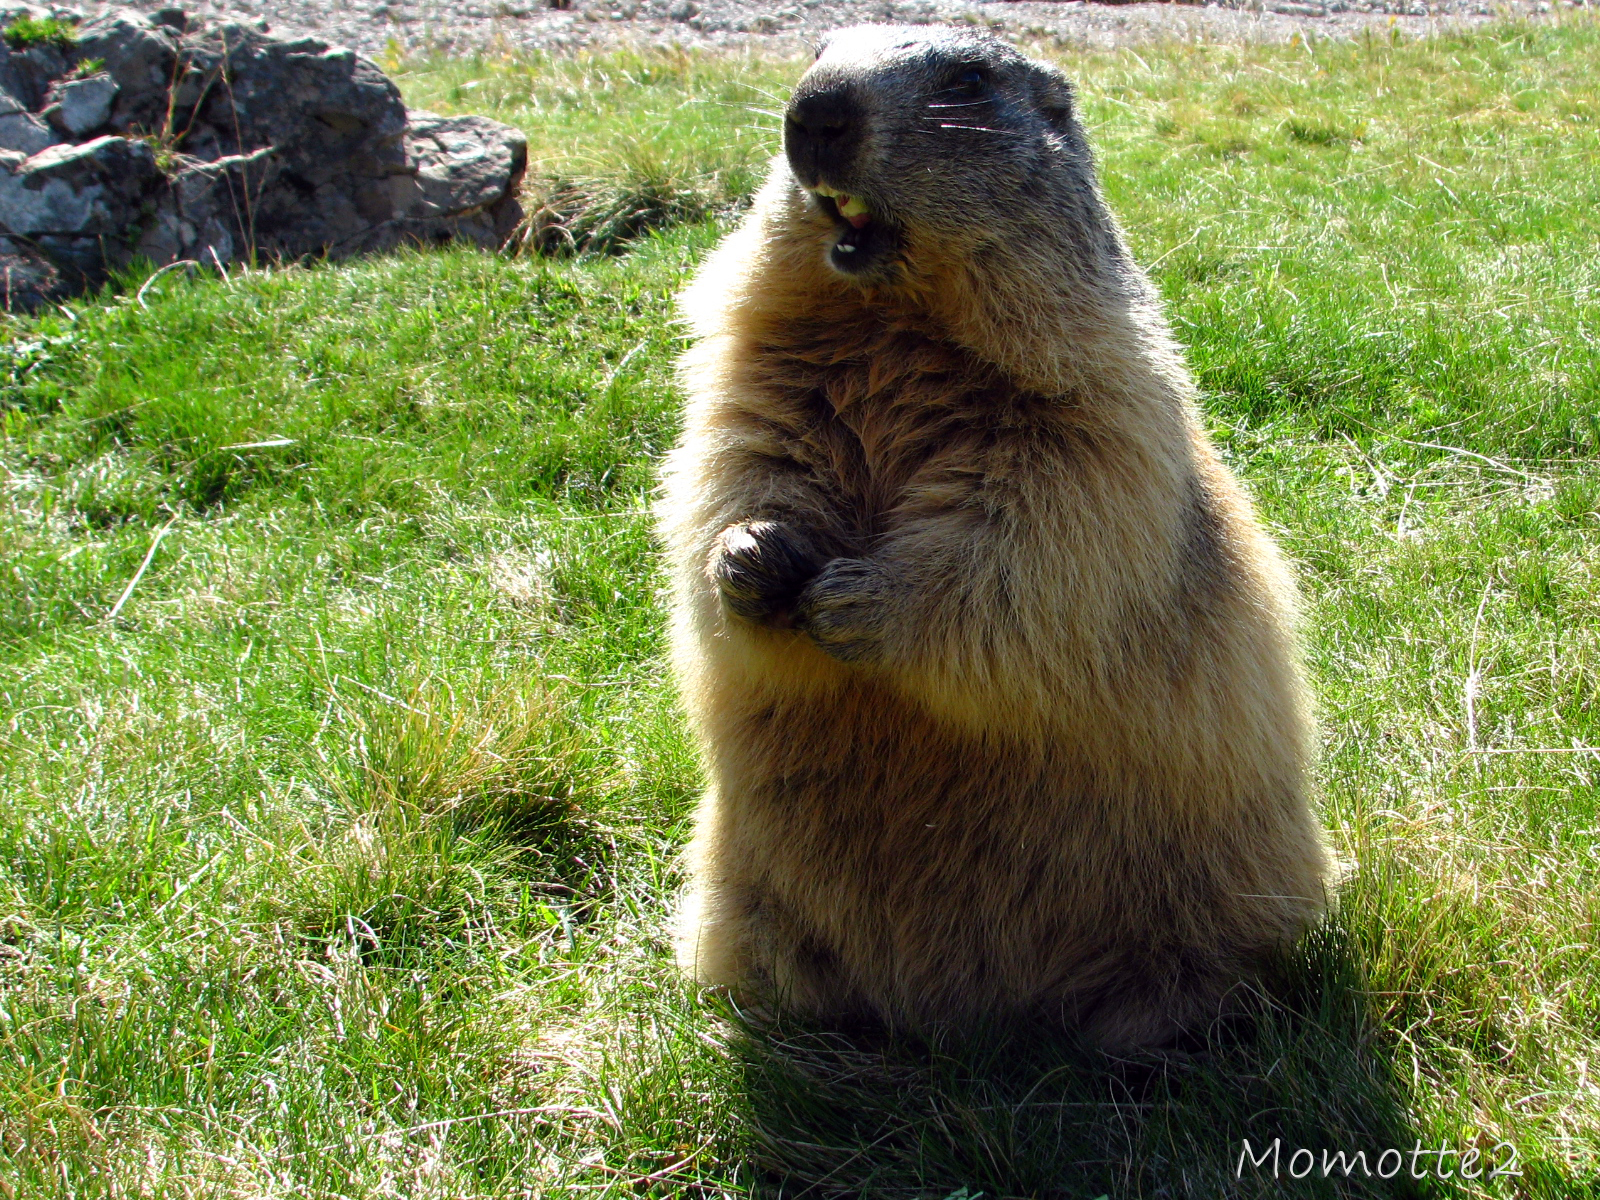 punxsutawney chat Small town in pennsylvania about 80 miles northeast of pittsburgh home of punxsutawney phil, the famous groundhog (woodchuck) every feb 2 (candlemas), there is a huge gathering at gobbler's knob to see if phil will see his shadow.